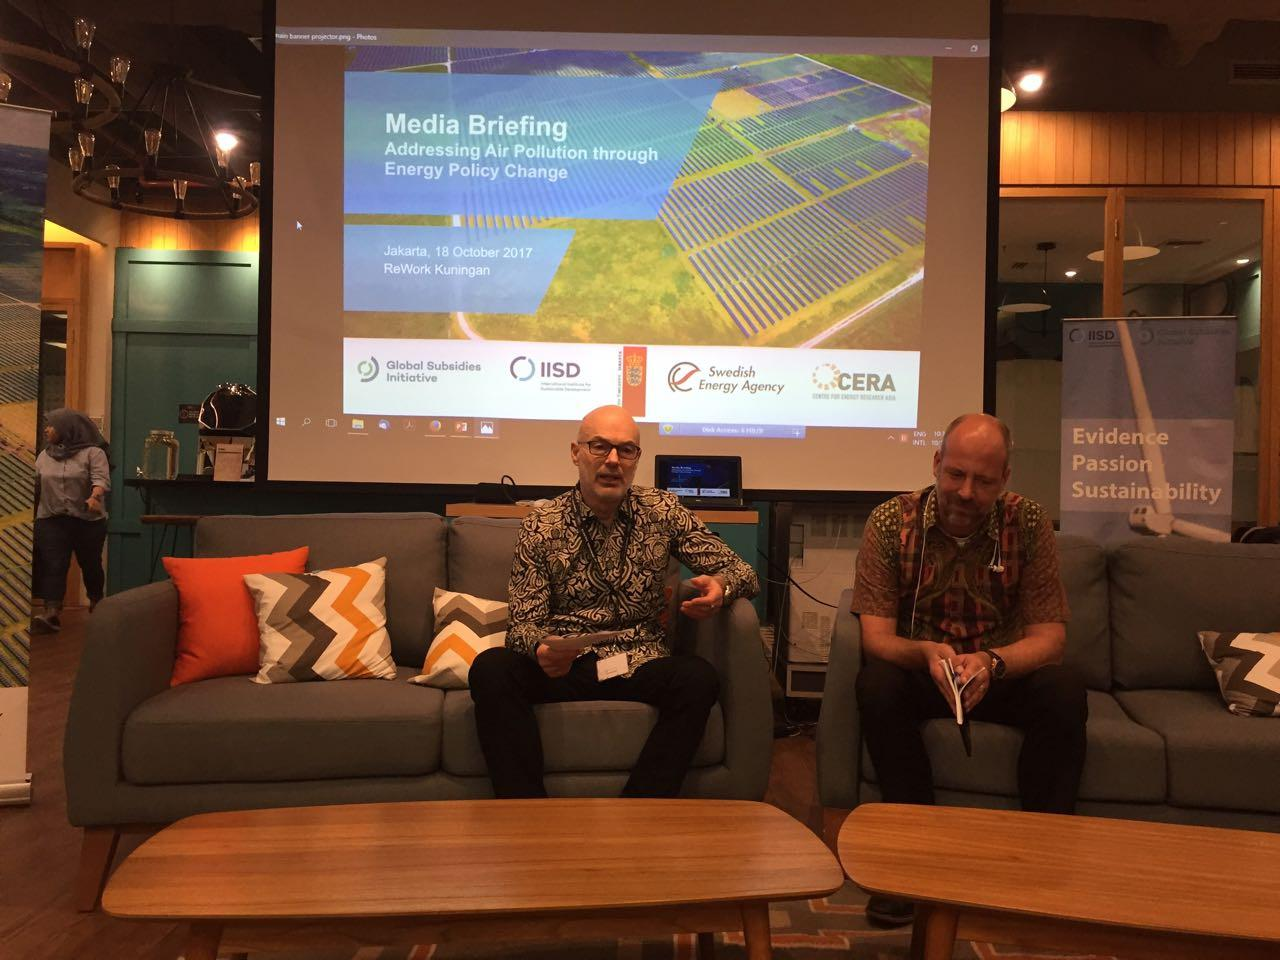 Head of Develompent Kedutaan Besar Denmark untuk Indonesia, Kurt Morck Jensen dan Head of Unit Swedish Energy Agency, Paul Westin (Liputan6.com/Teddy Tri Setio Berty)